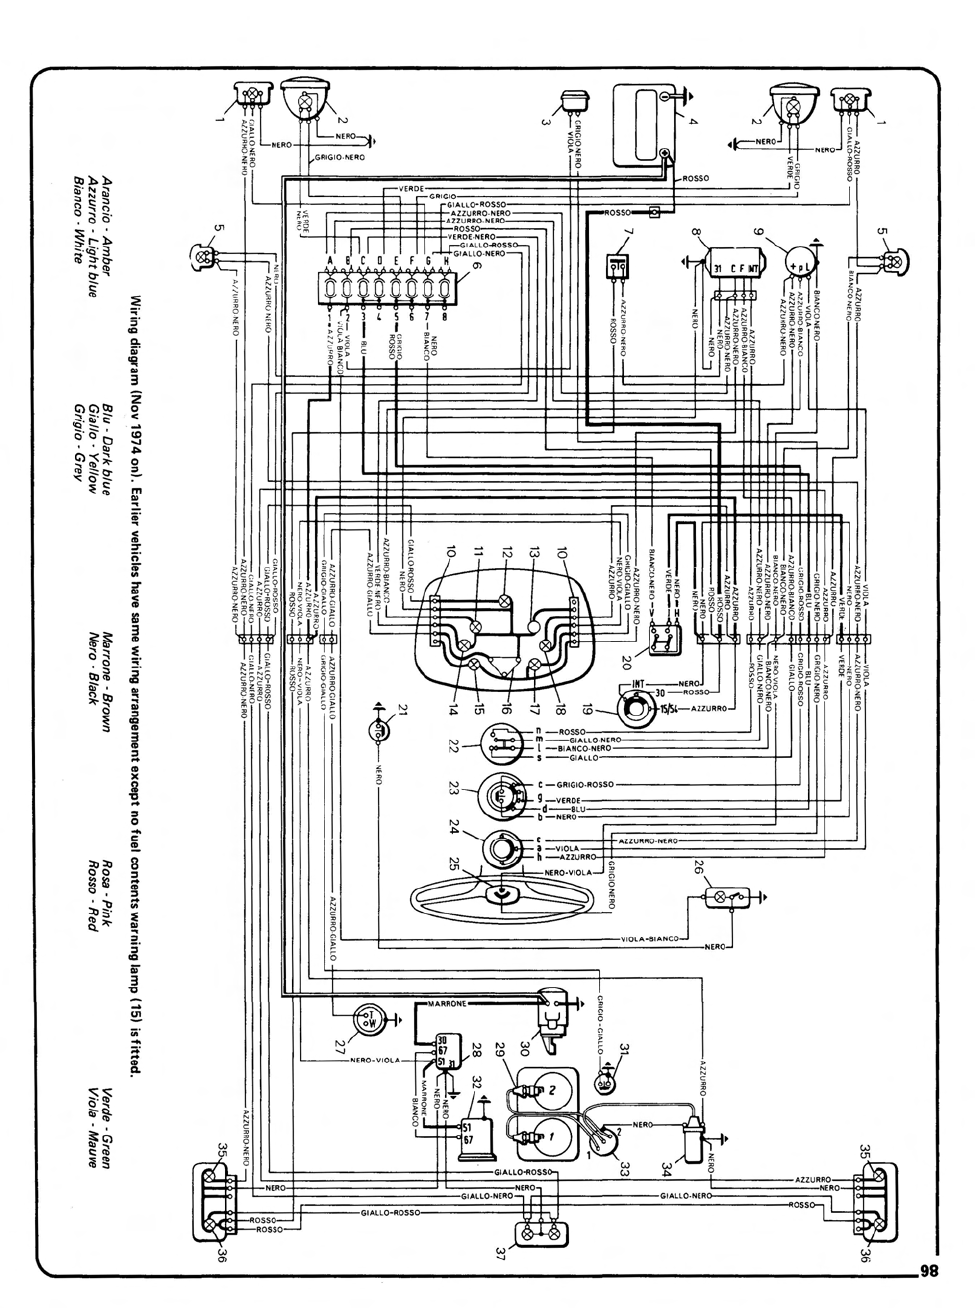 [DIAGRAM] Fiat Palio Wiring Diagram Pdf FULL Version HD